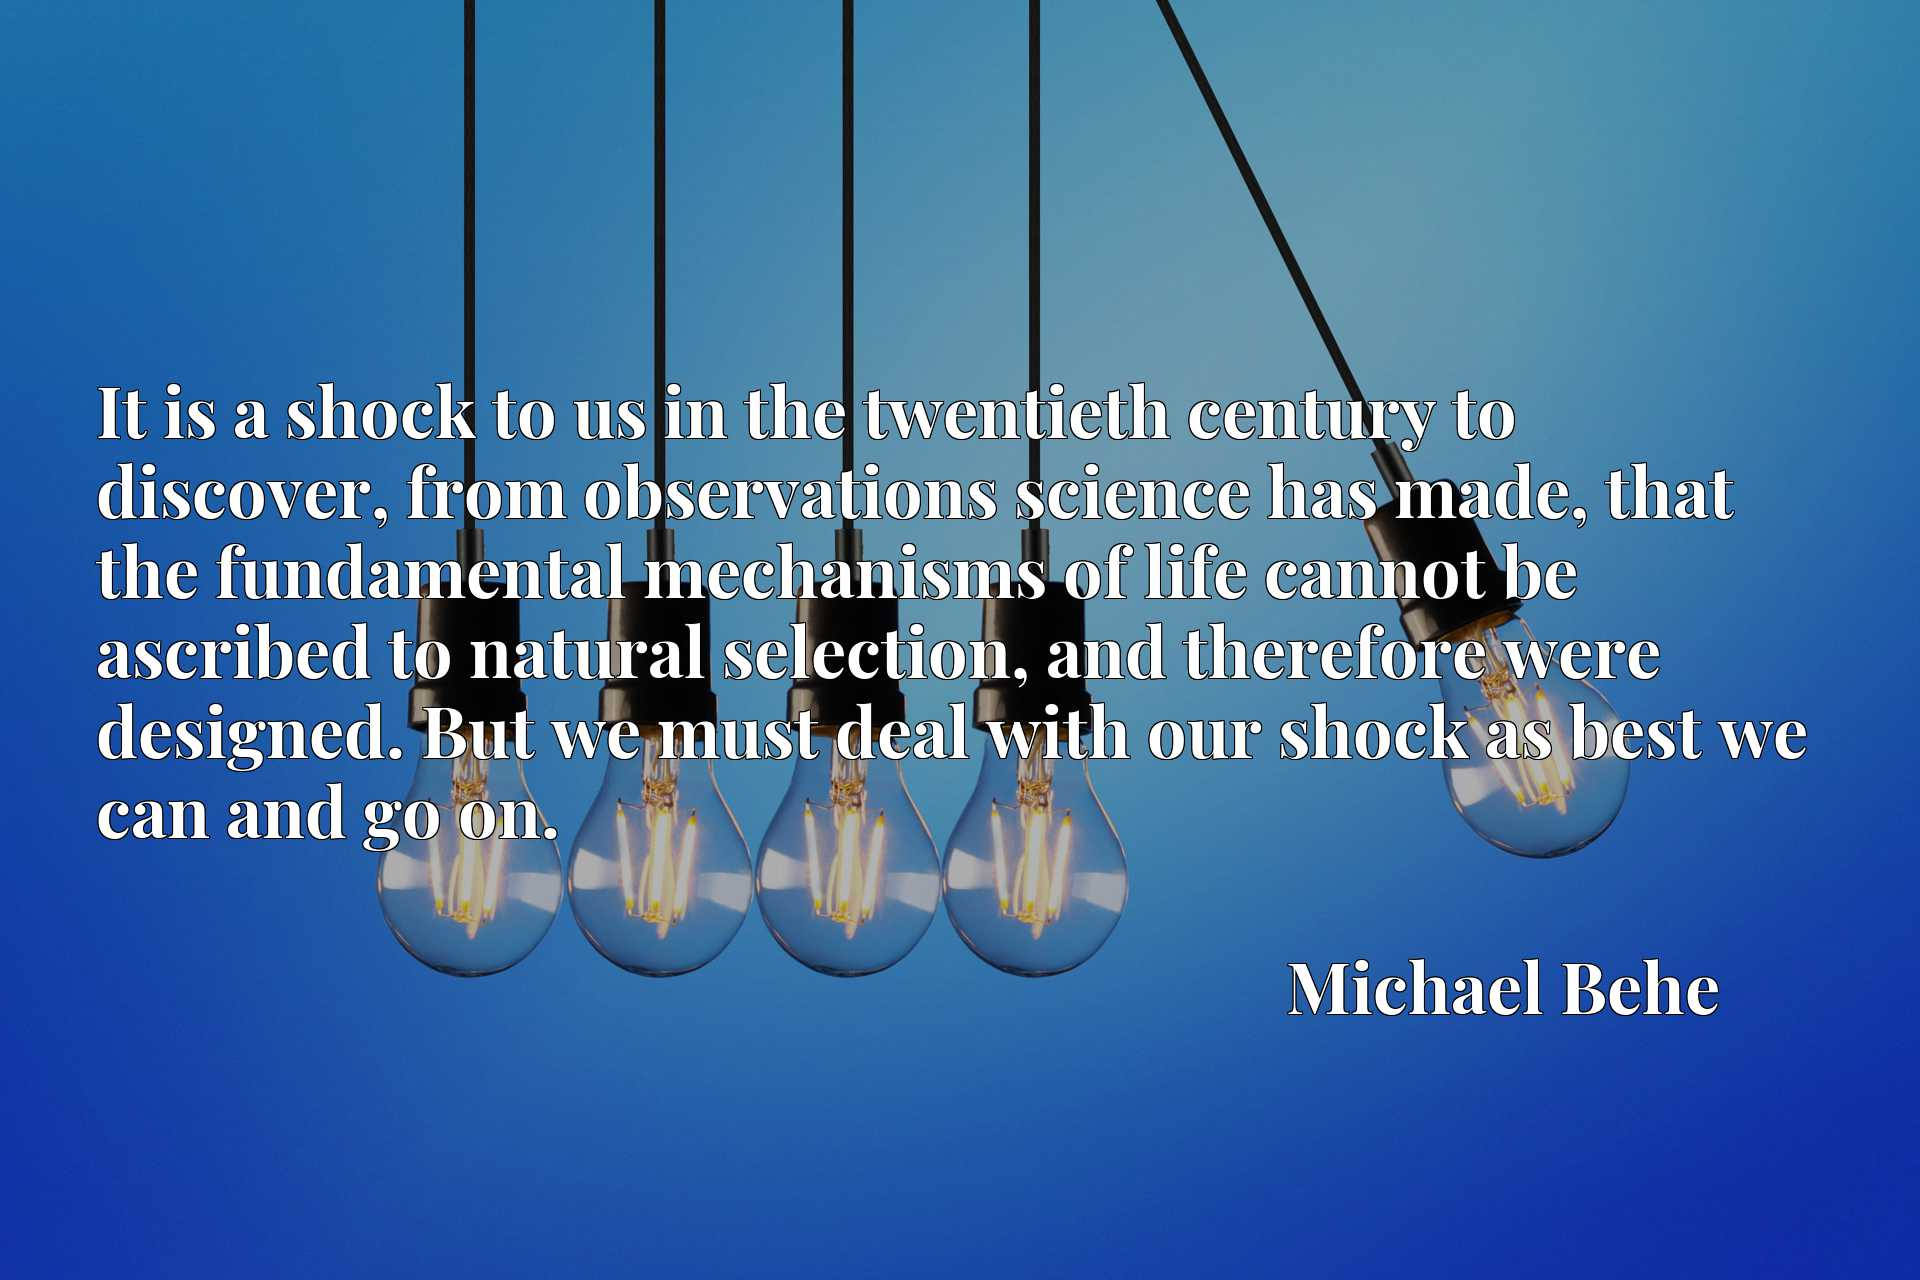 It is a shock to us in the twentieth century to discover, from observations science has made, that the fundamental mechanisms of life cannot be ascribed to natural selection, and therefore were designed. But we must deal with our shock as best we can and go on.